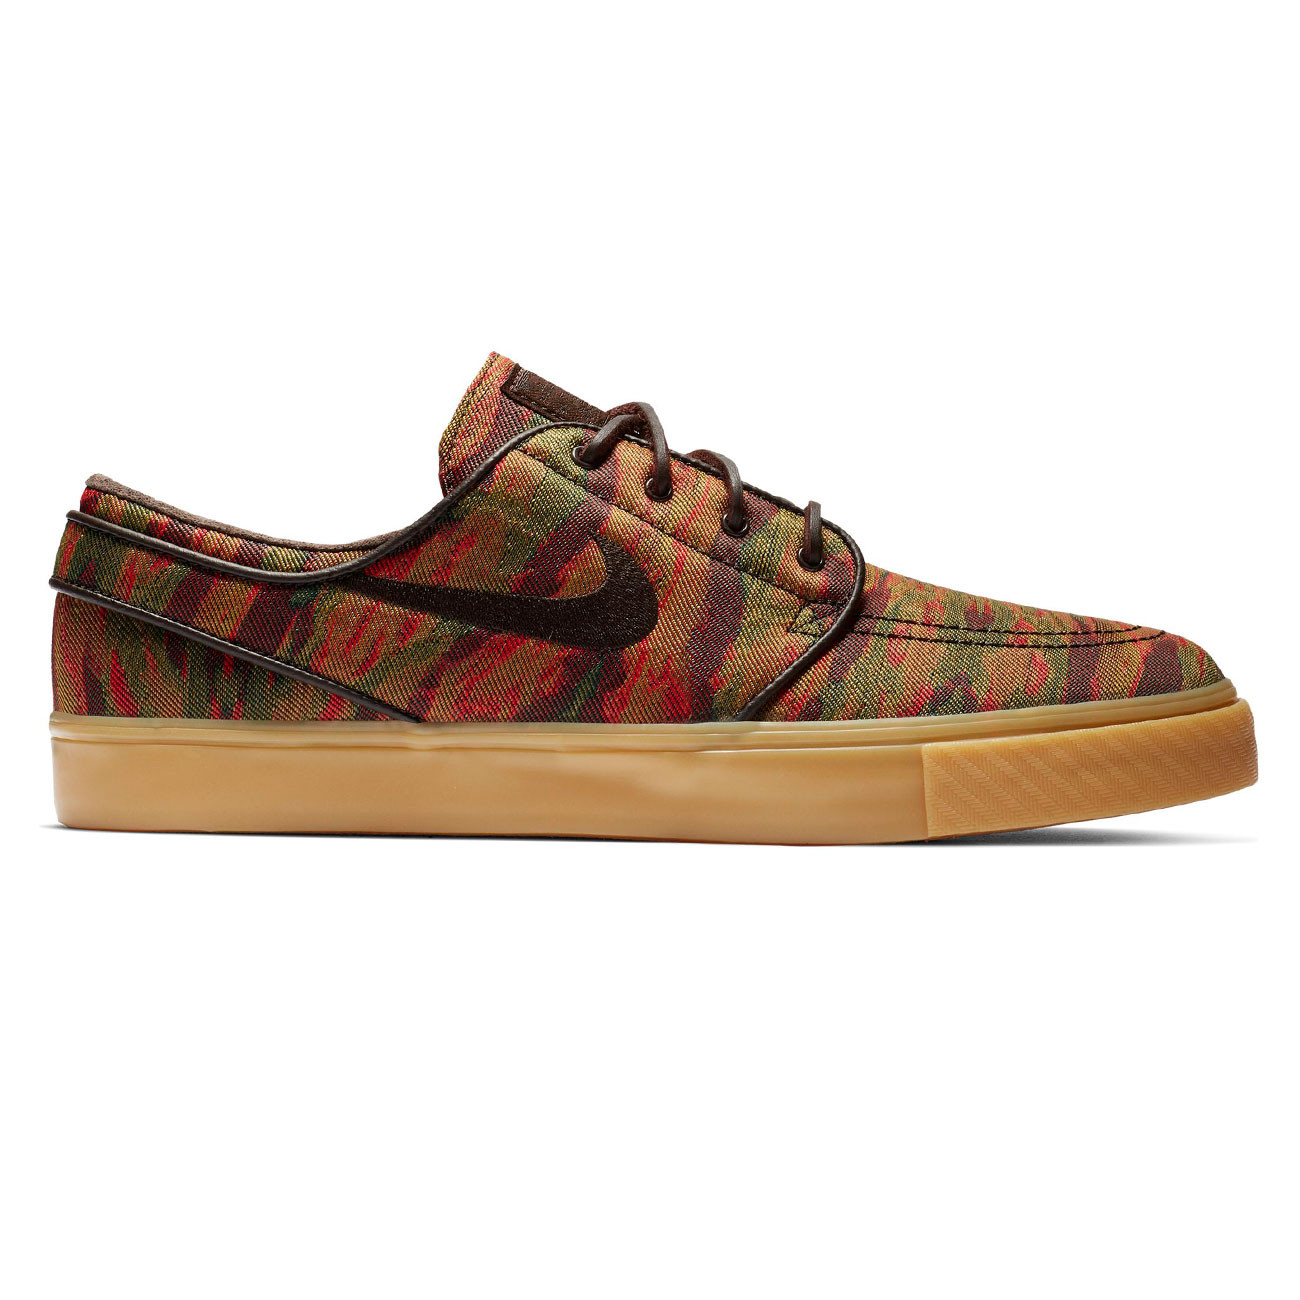 new product f8842 874a7 Sneakers Nike SB Zoom Stefan Janoski Canvas multi-color velvet brown-gum yll    Snowboard Zezula